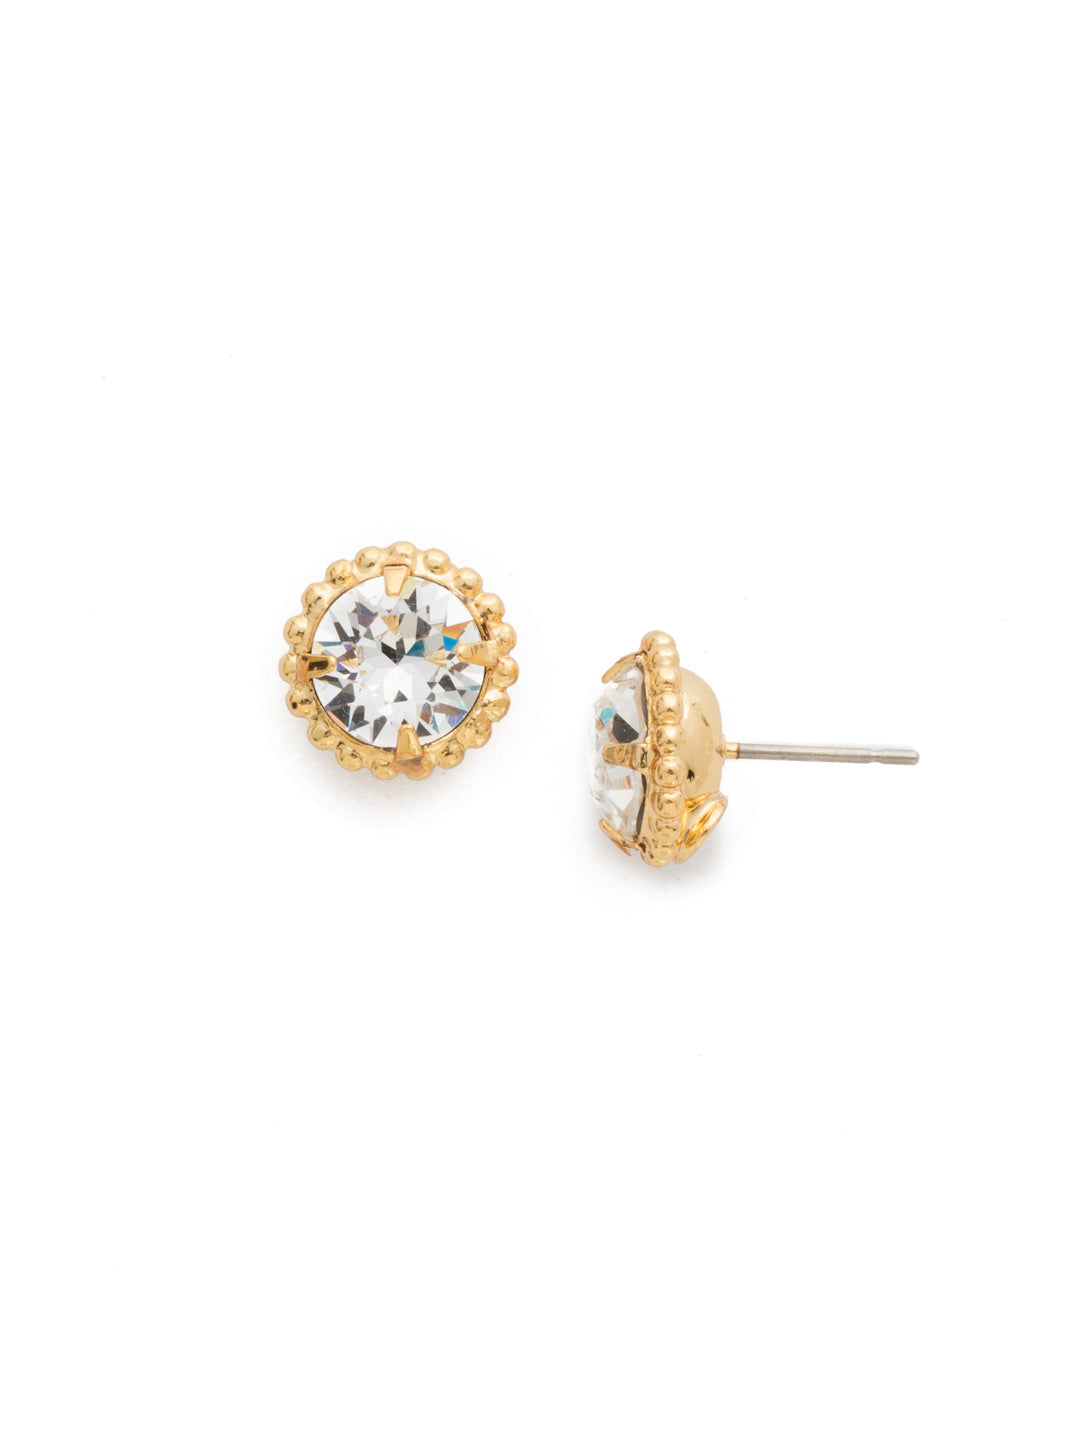 Simplicity Stud Earrings - EBY38BGCRY